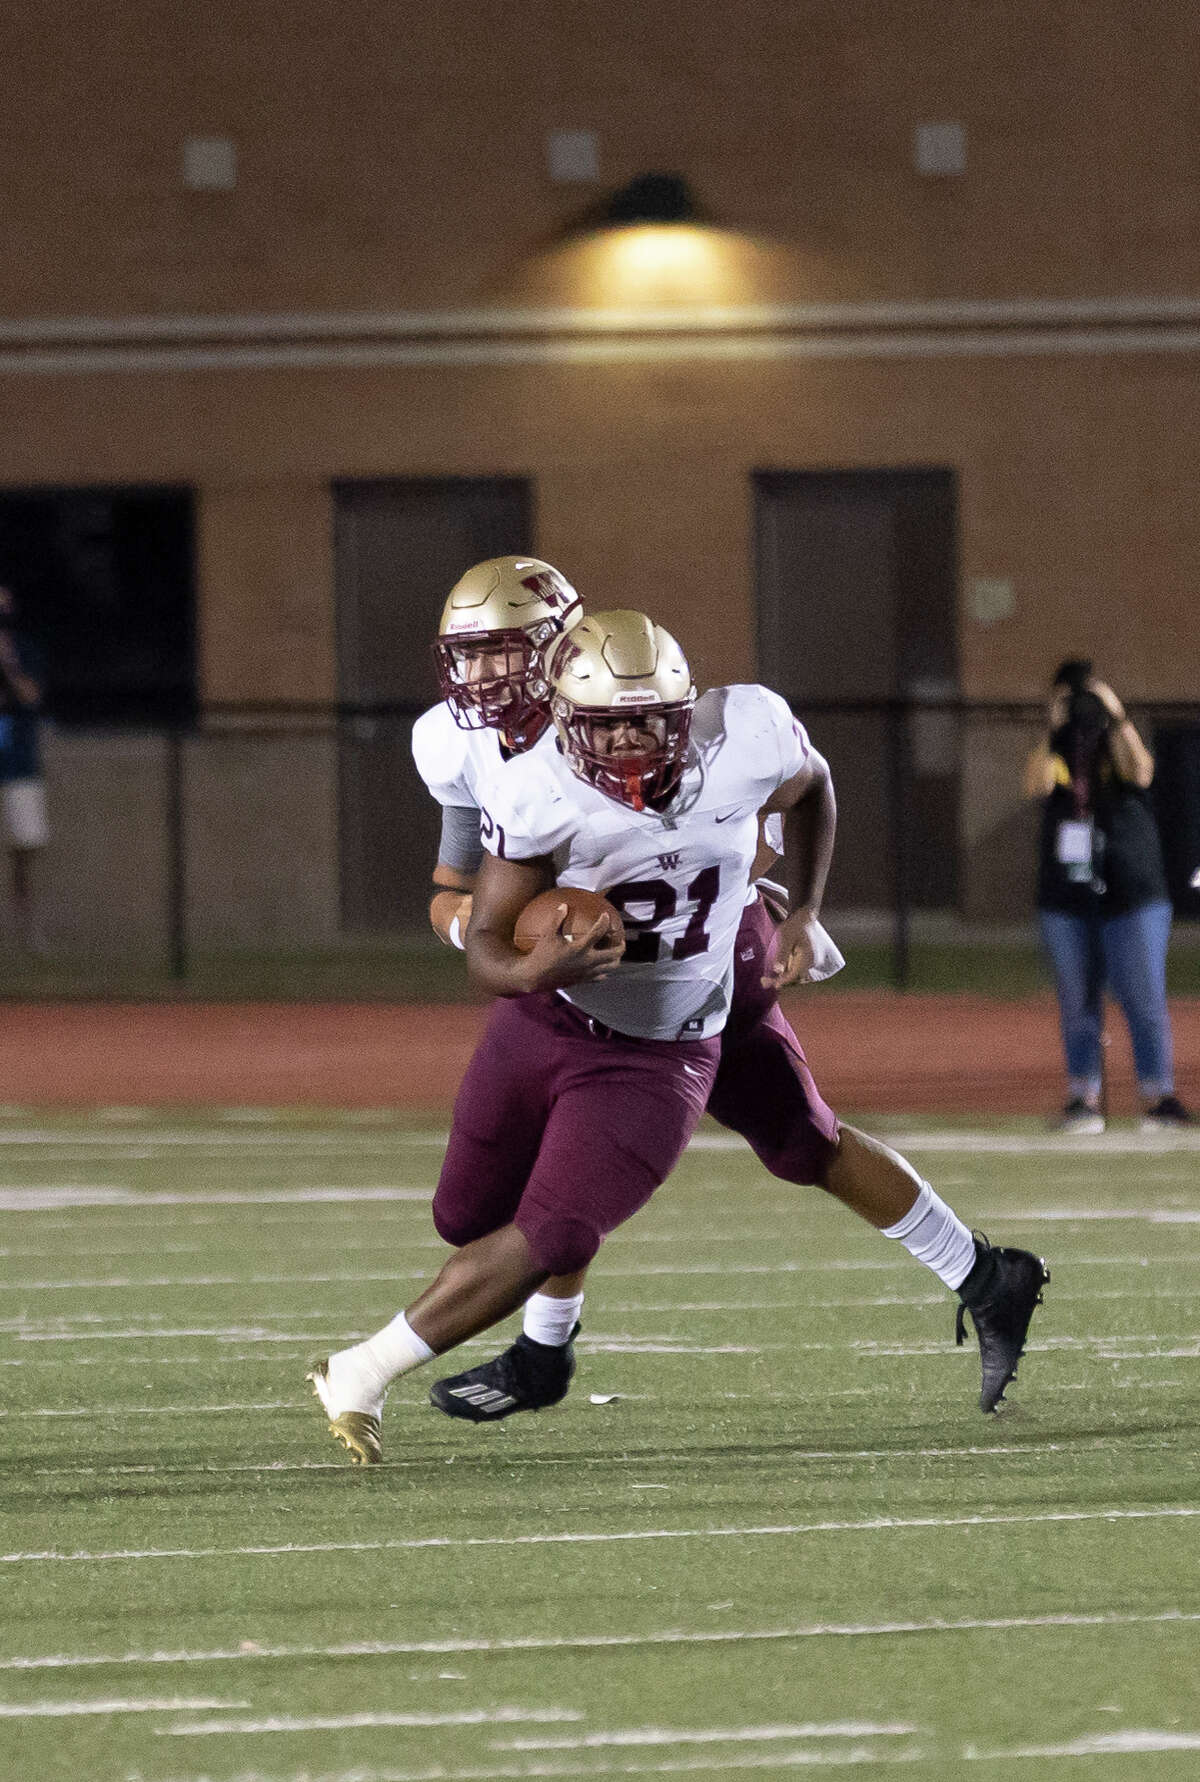 Cypress Woods running back Trayse Holmes (21) runs the ball down the field during the third quarter of a non-district football game against Kingwood at Turner Stadium in Humble, Saturday, Sept. 26, 2020.